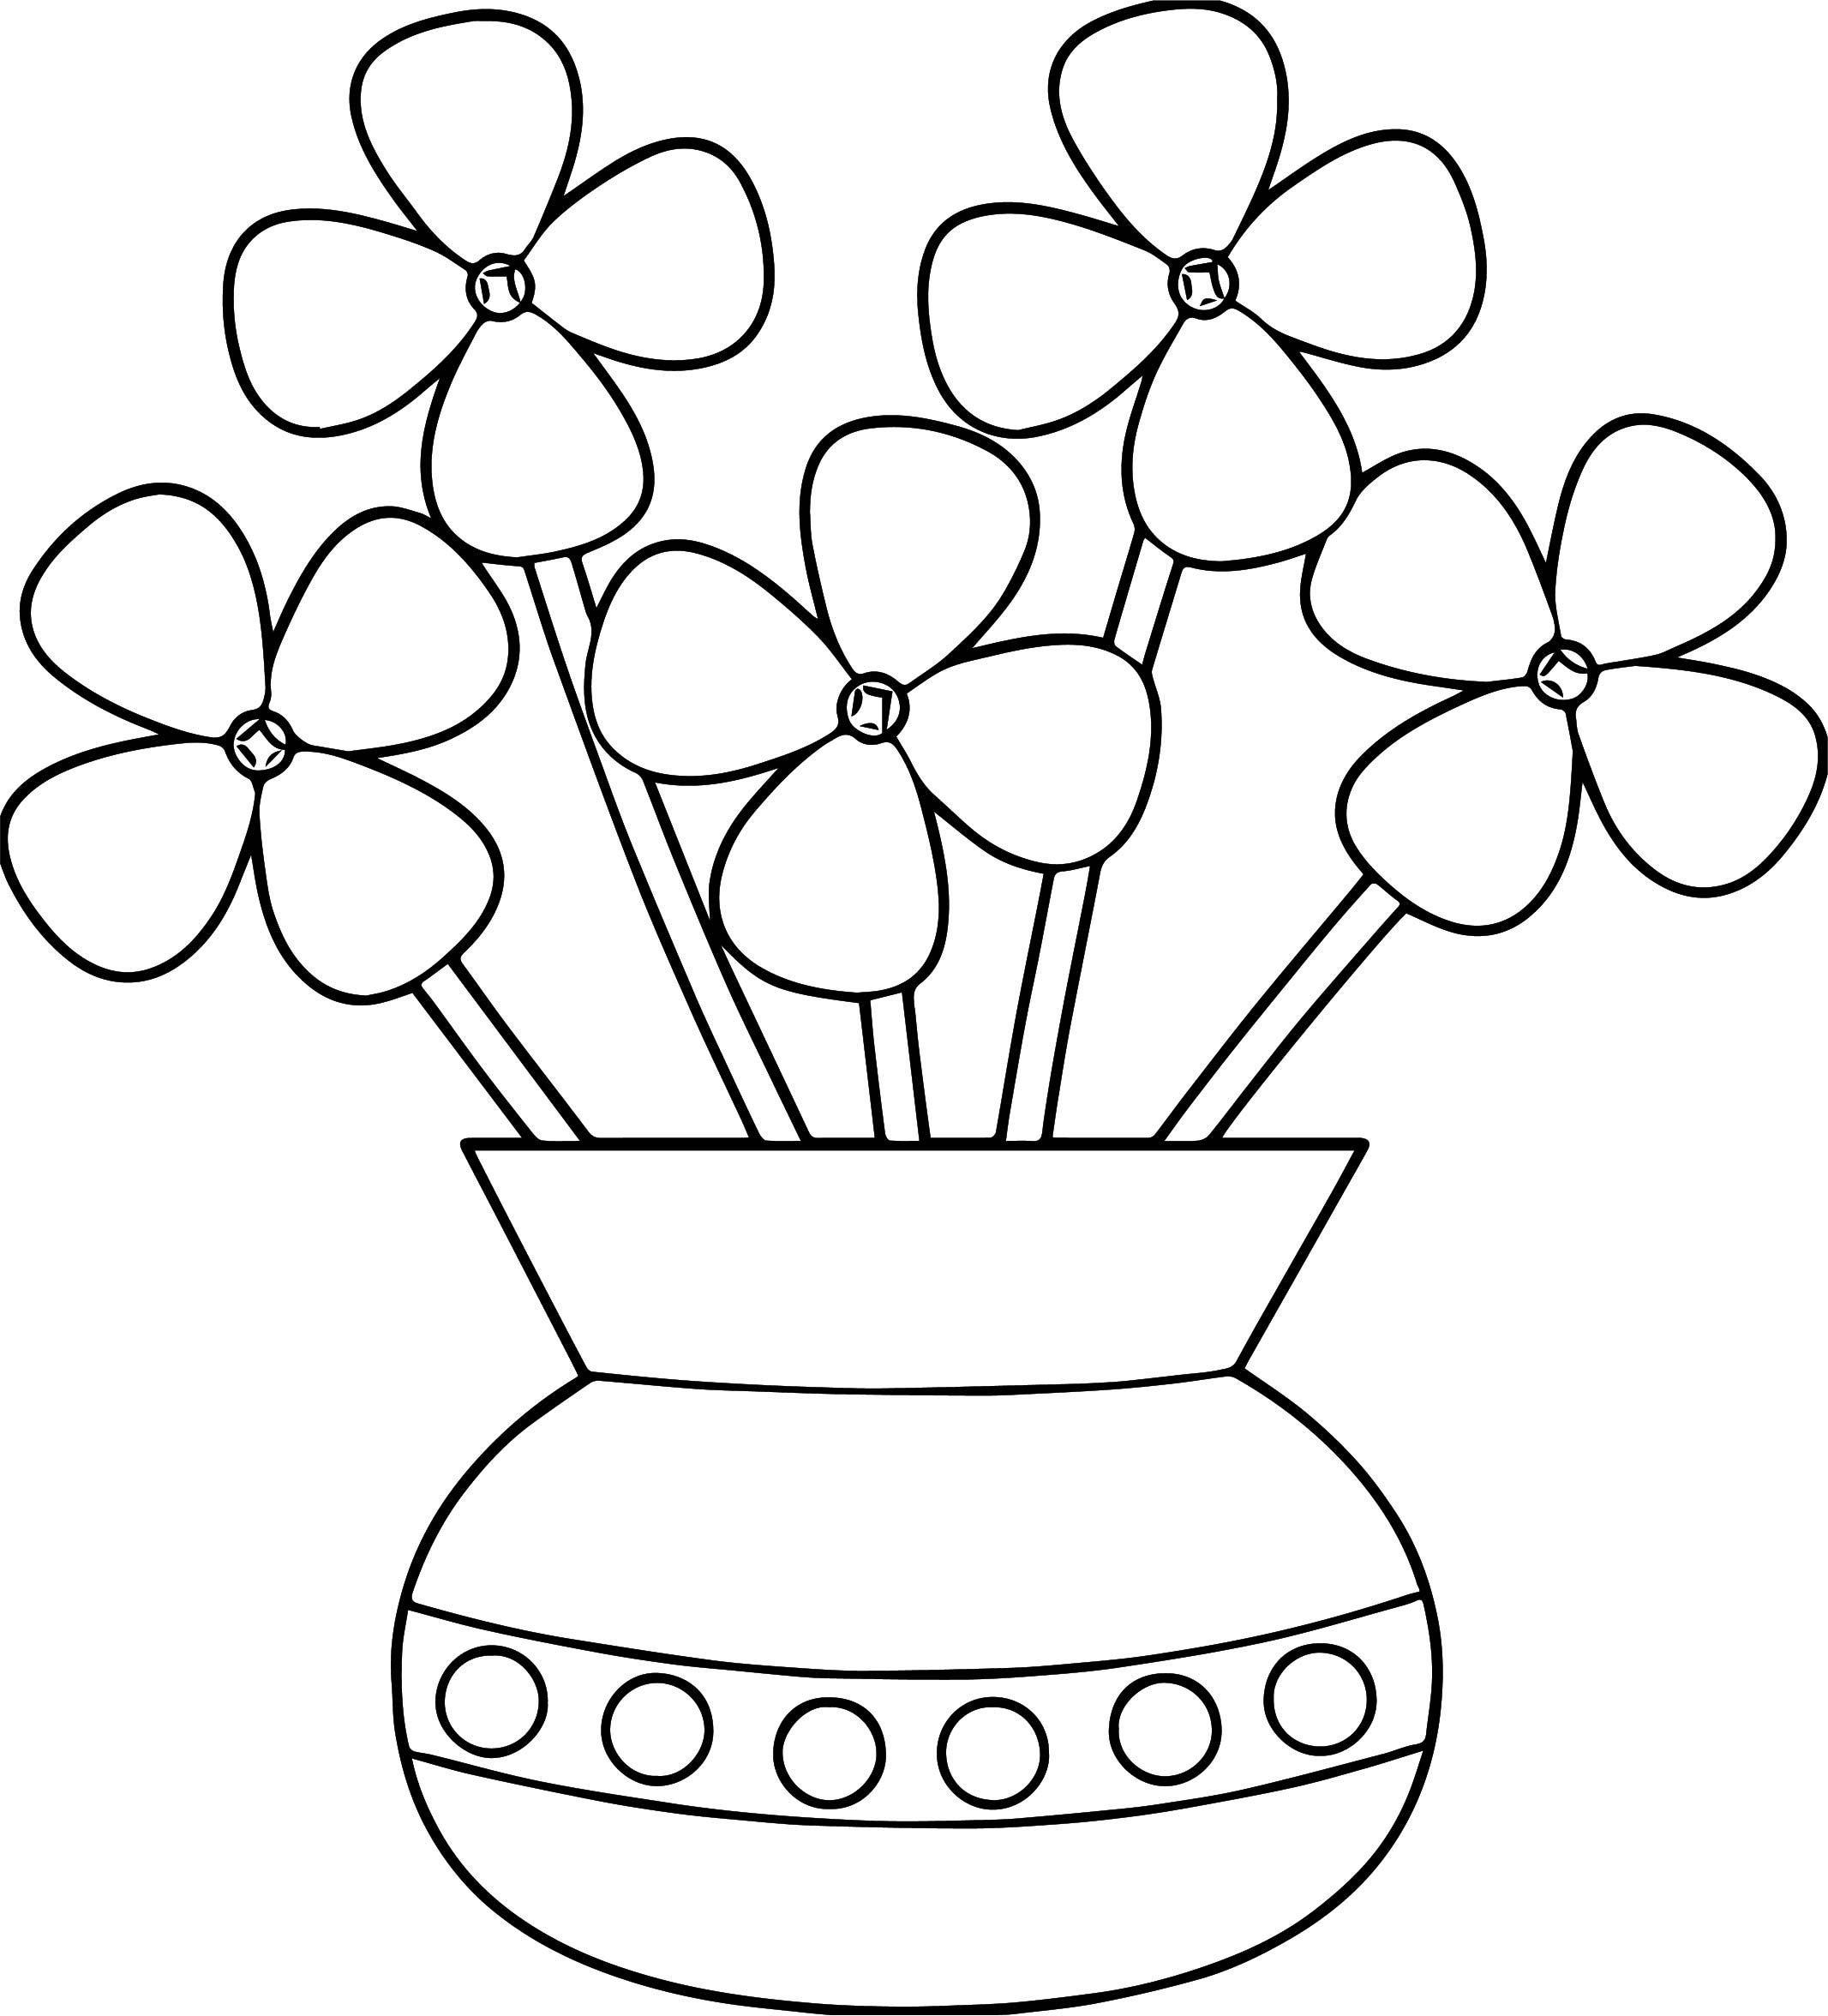 Nice Flowerpot Flower Coloring Page Flower Coloring Sheets Printable Flower Coloring Pages Spring Coloring Pages